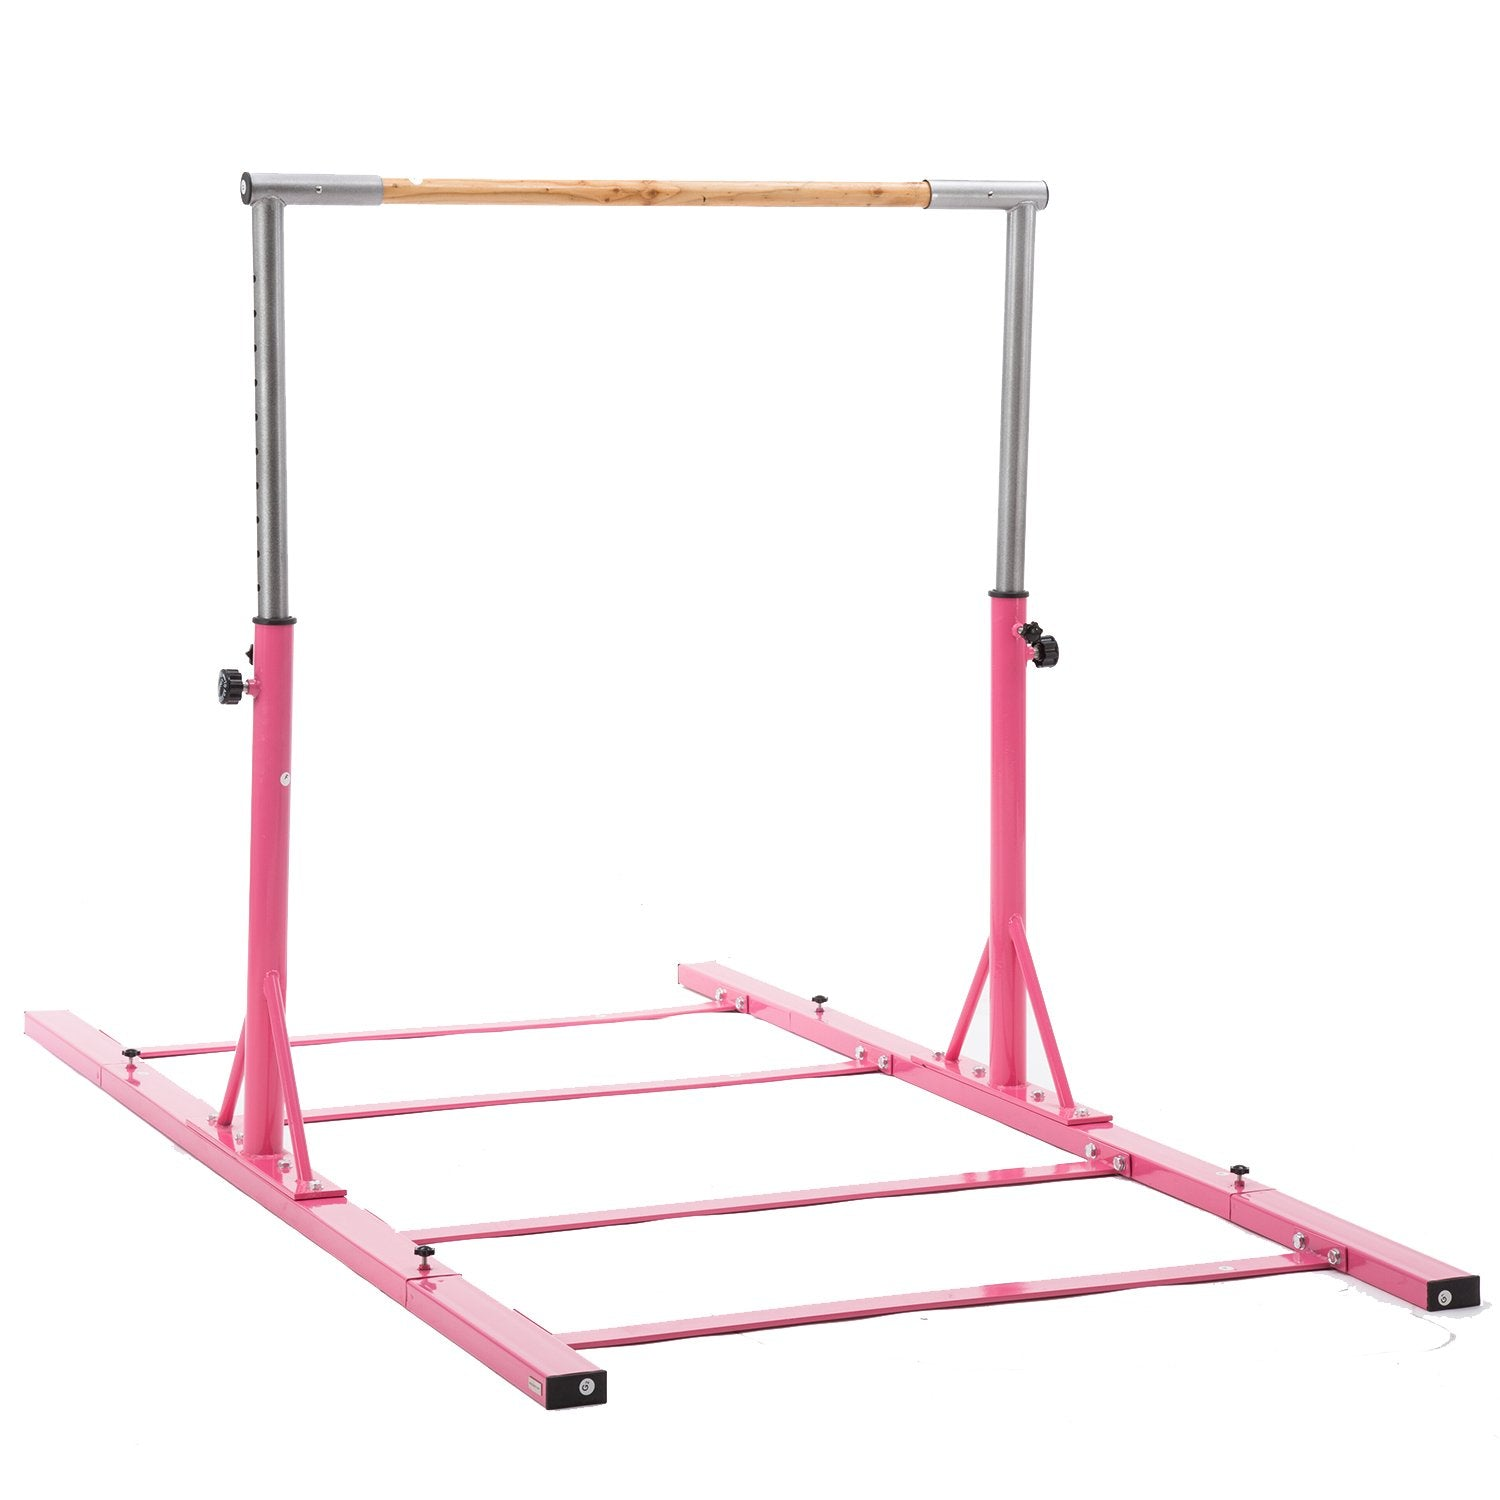 Advanced Gymnastic Horizontal Bar Long Base Training Bar Adjustable Height Kip Bar (Pink)